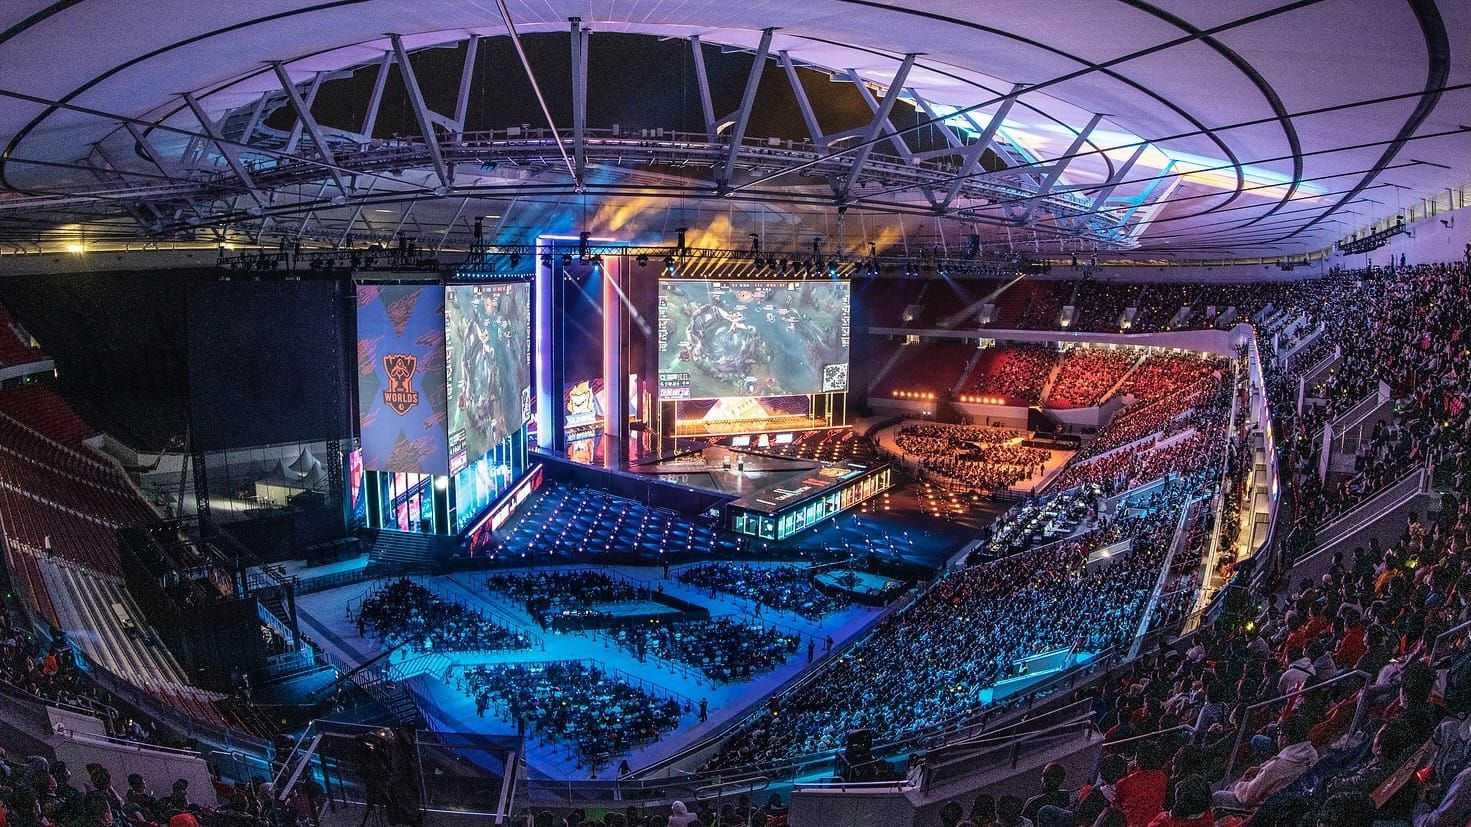 View of the League of Legends World Championship 2021 final stage from the stands of the stadium